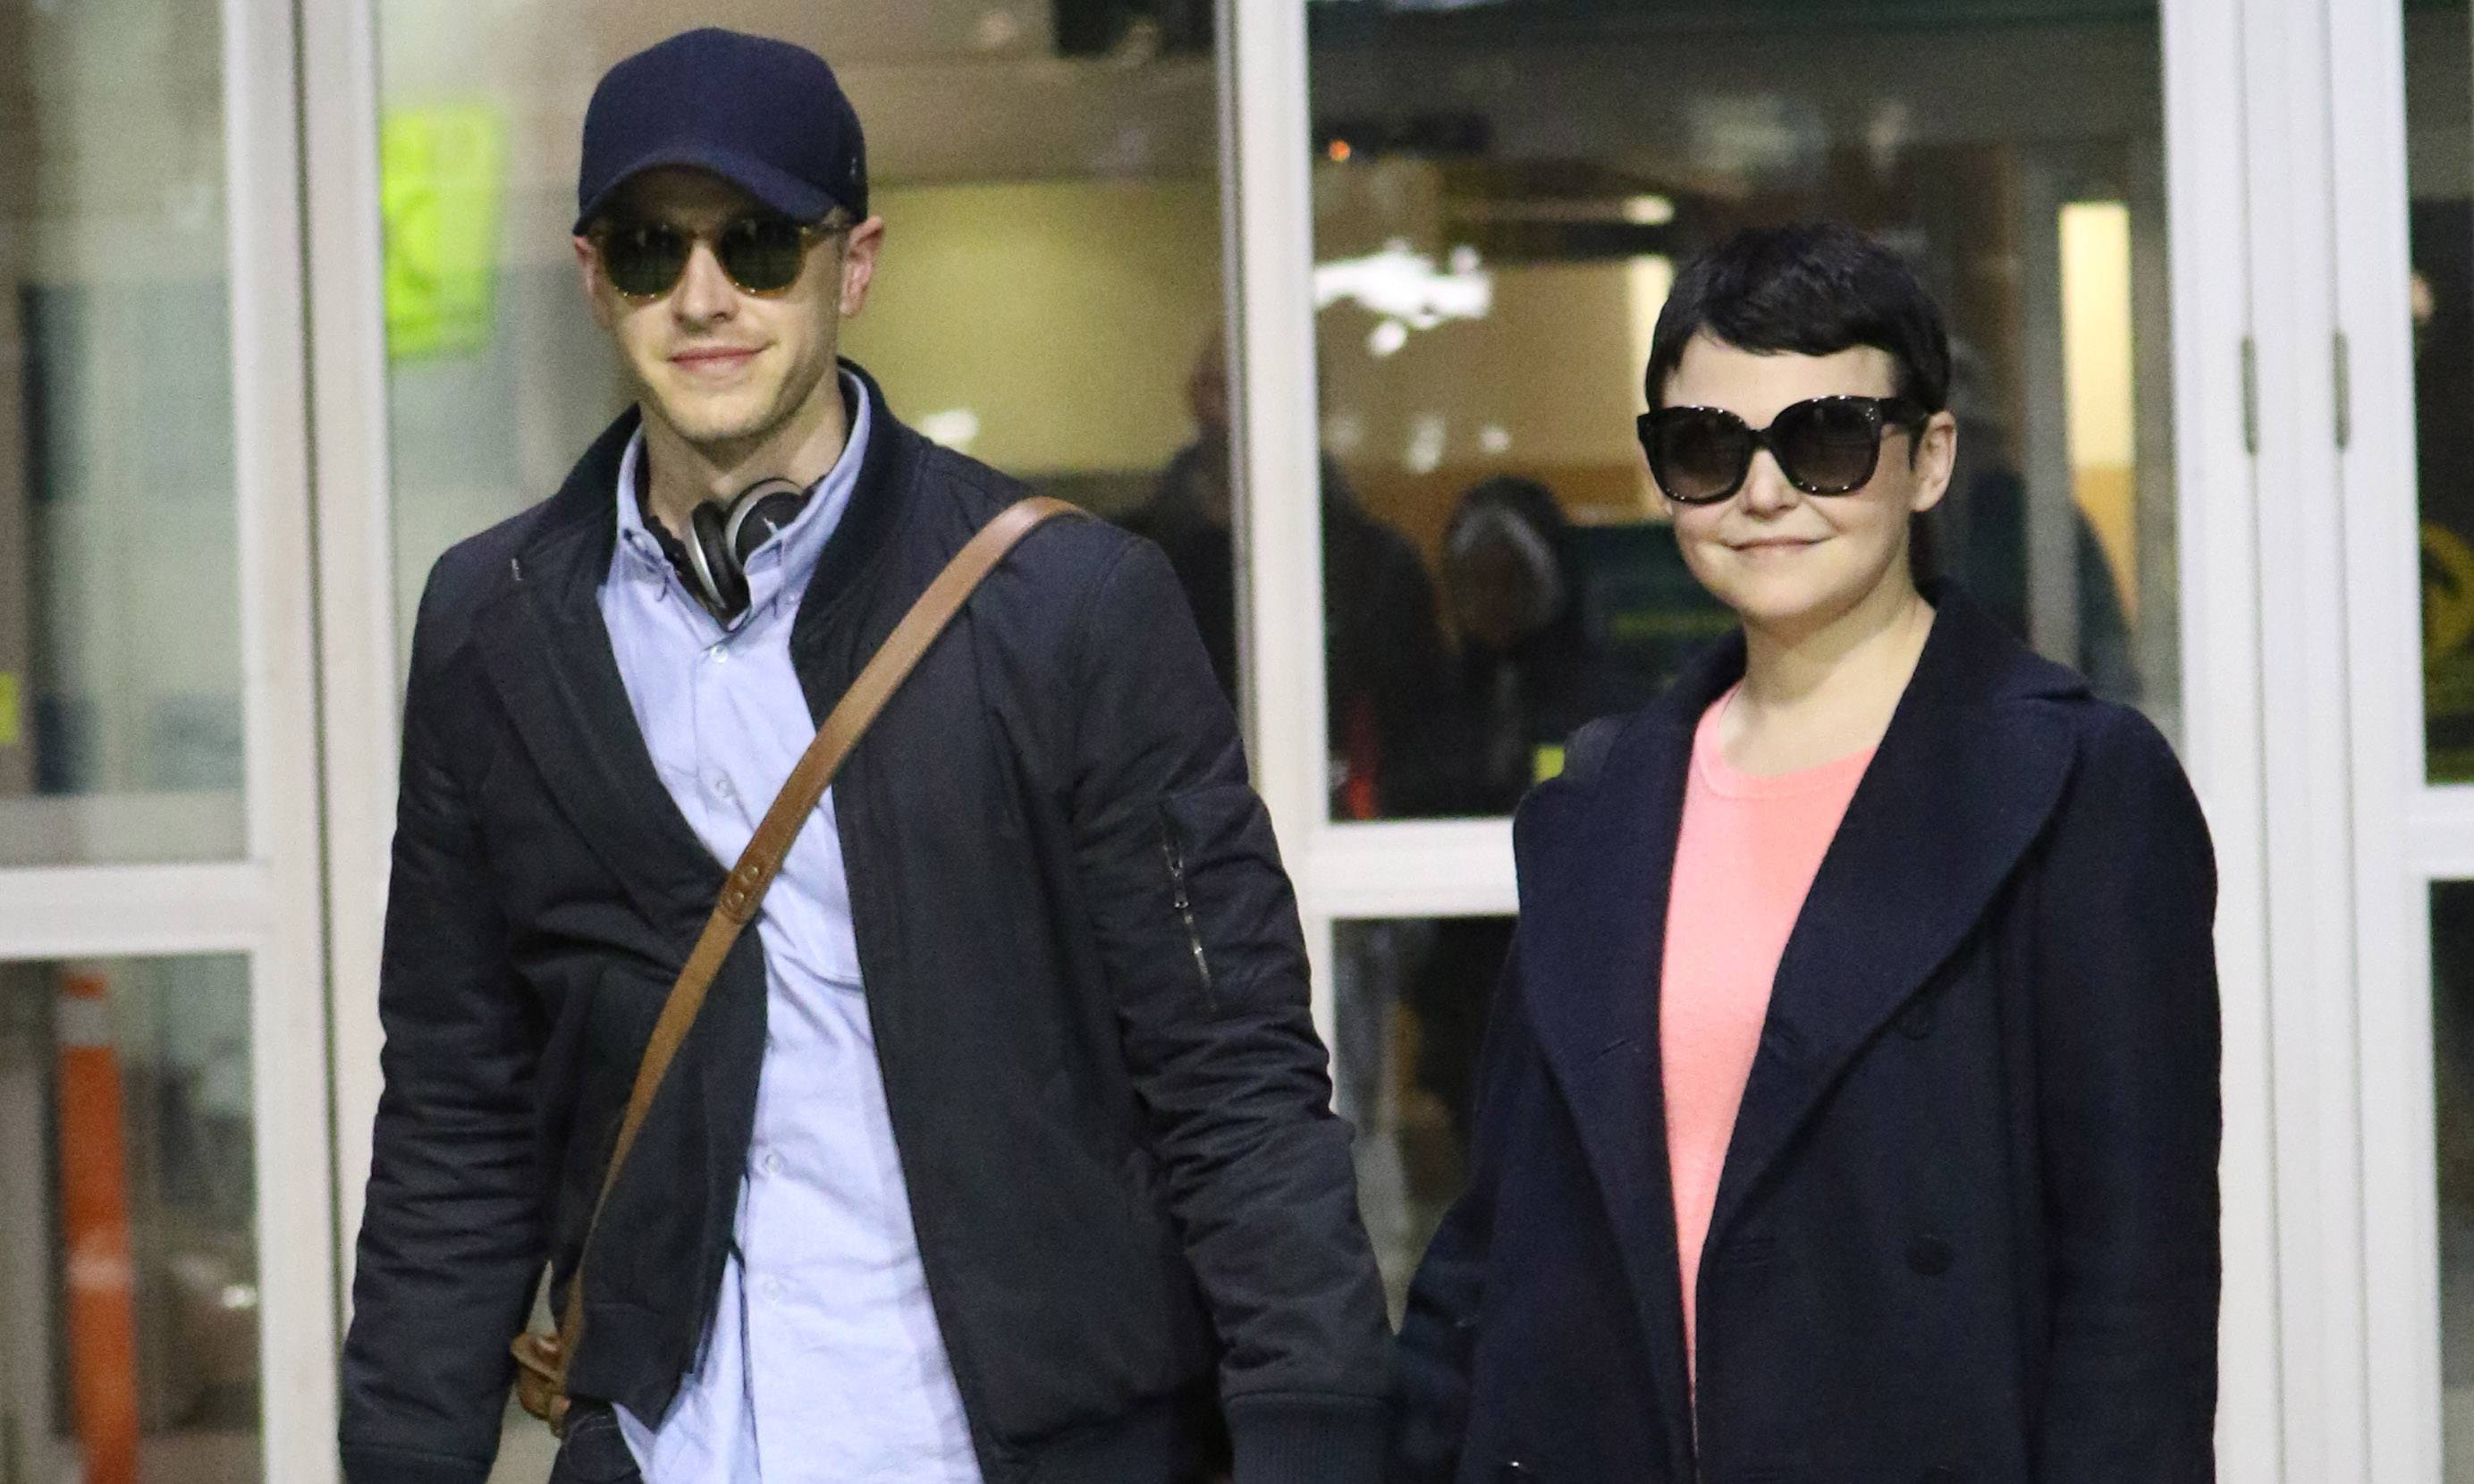 Josh Dallas and Ginnifer Goodwin arrive in Vancouver (Photos)